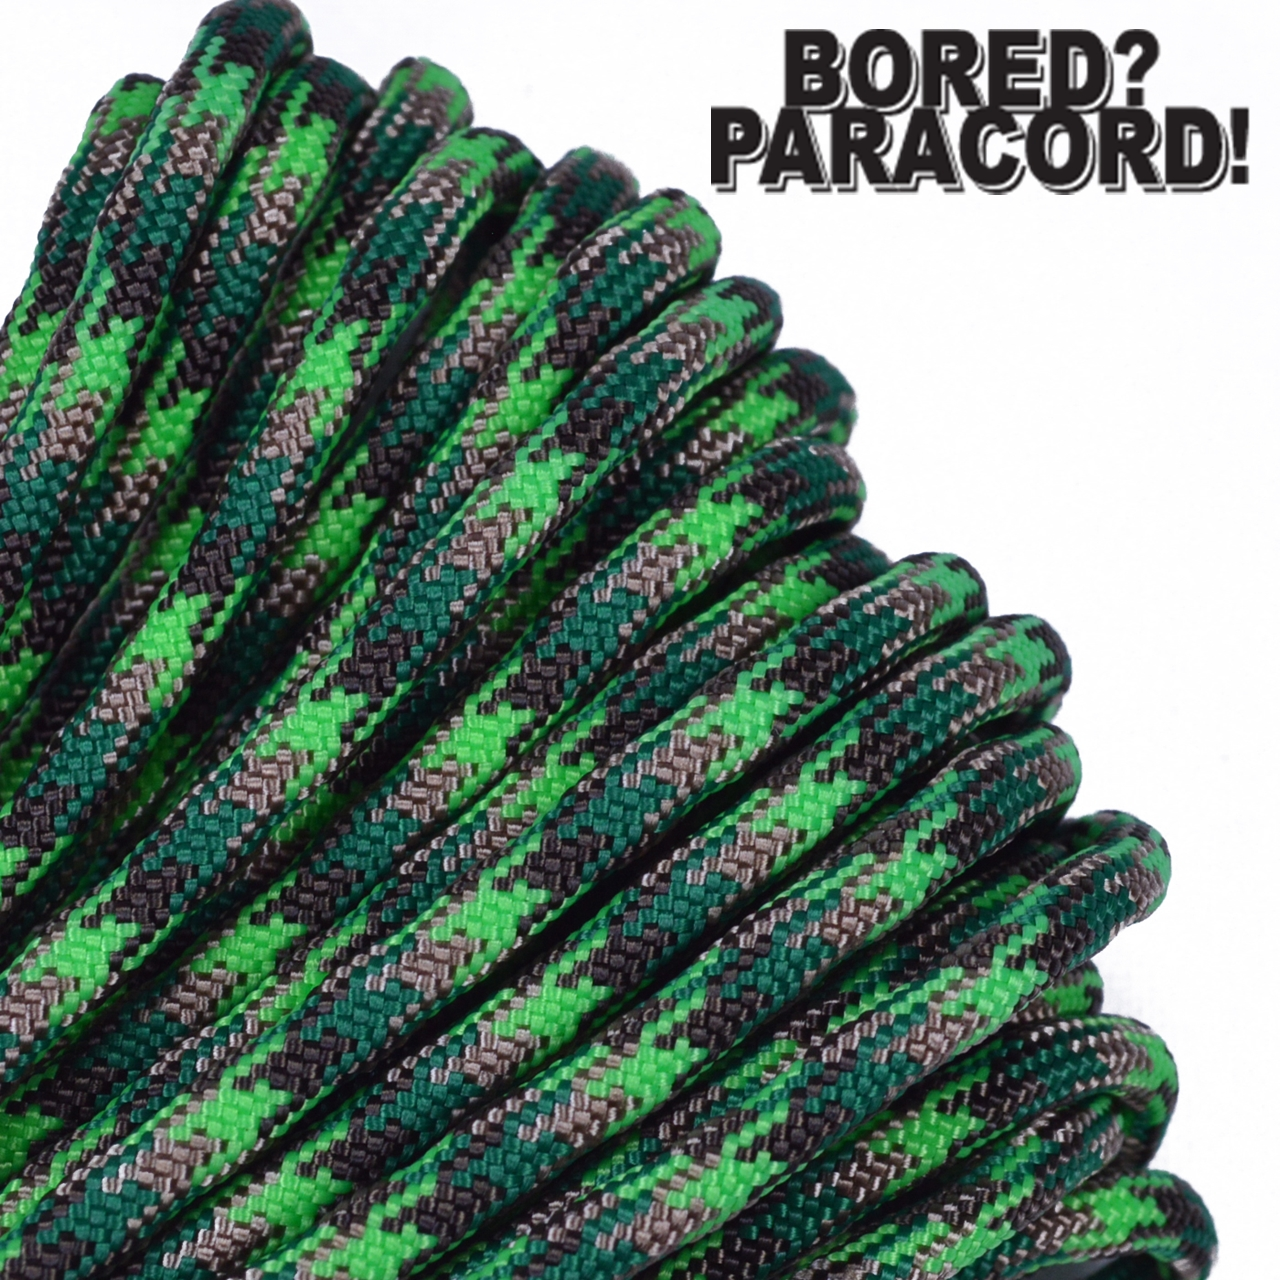 Bored Paracord Brand 550 lb Type III Paracord - Neon Green Flame 100 Feet